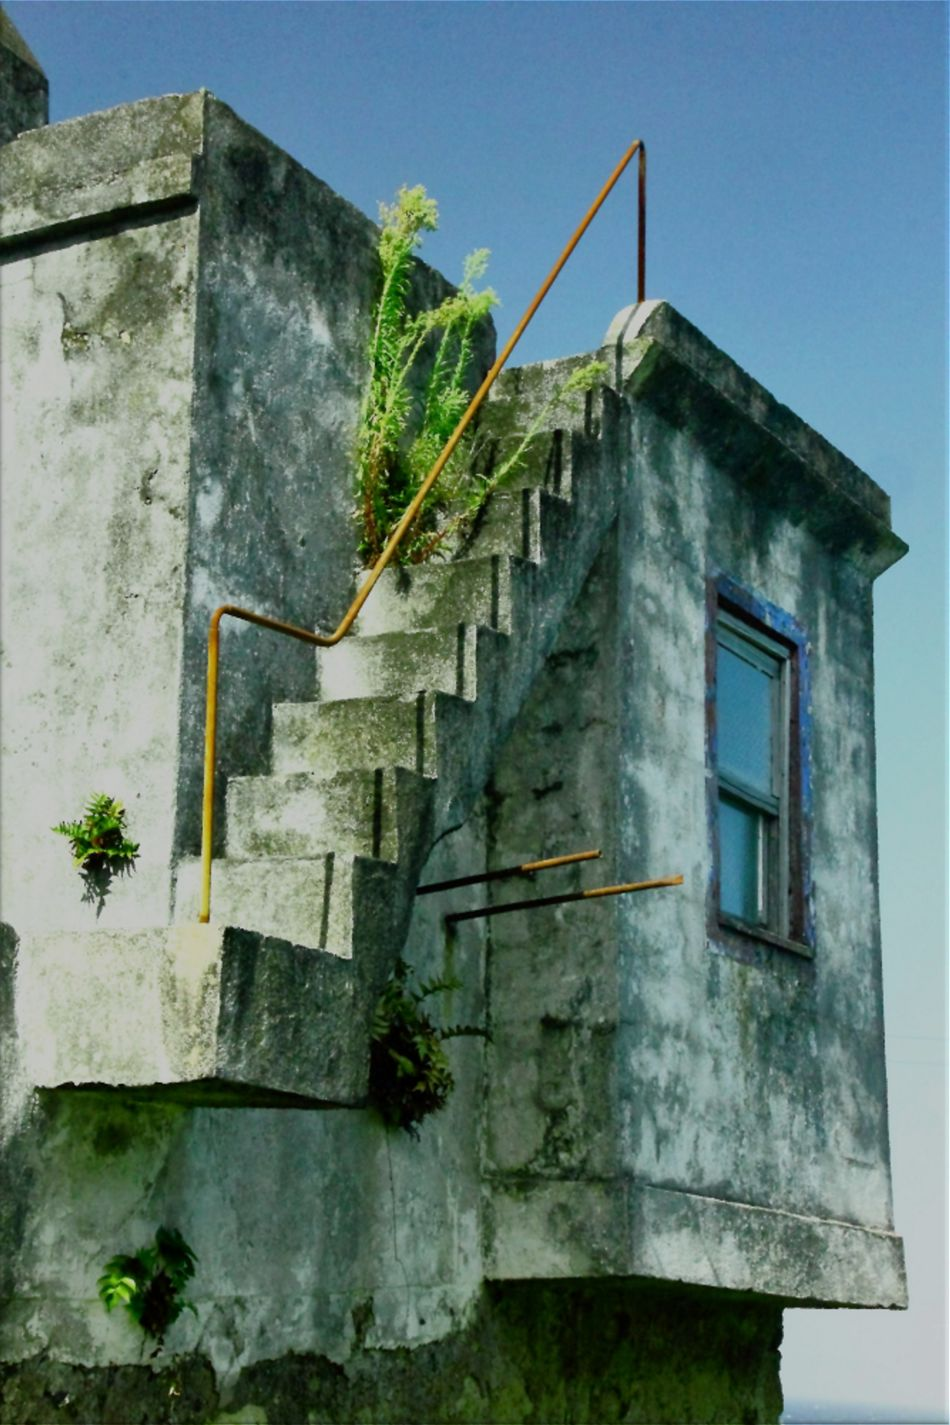 Look-See Architecture Blue Building Exterior Built Structure Clear Sky Damaged Day Exterior Flores Island Landscape Look-out Low Angle View No People Outdoors Overgrown And Beautiful Ponta Delgada Stairway To Heaven Weathered Window Adapted To The City